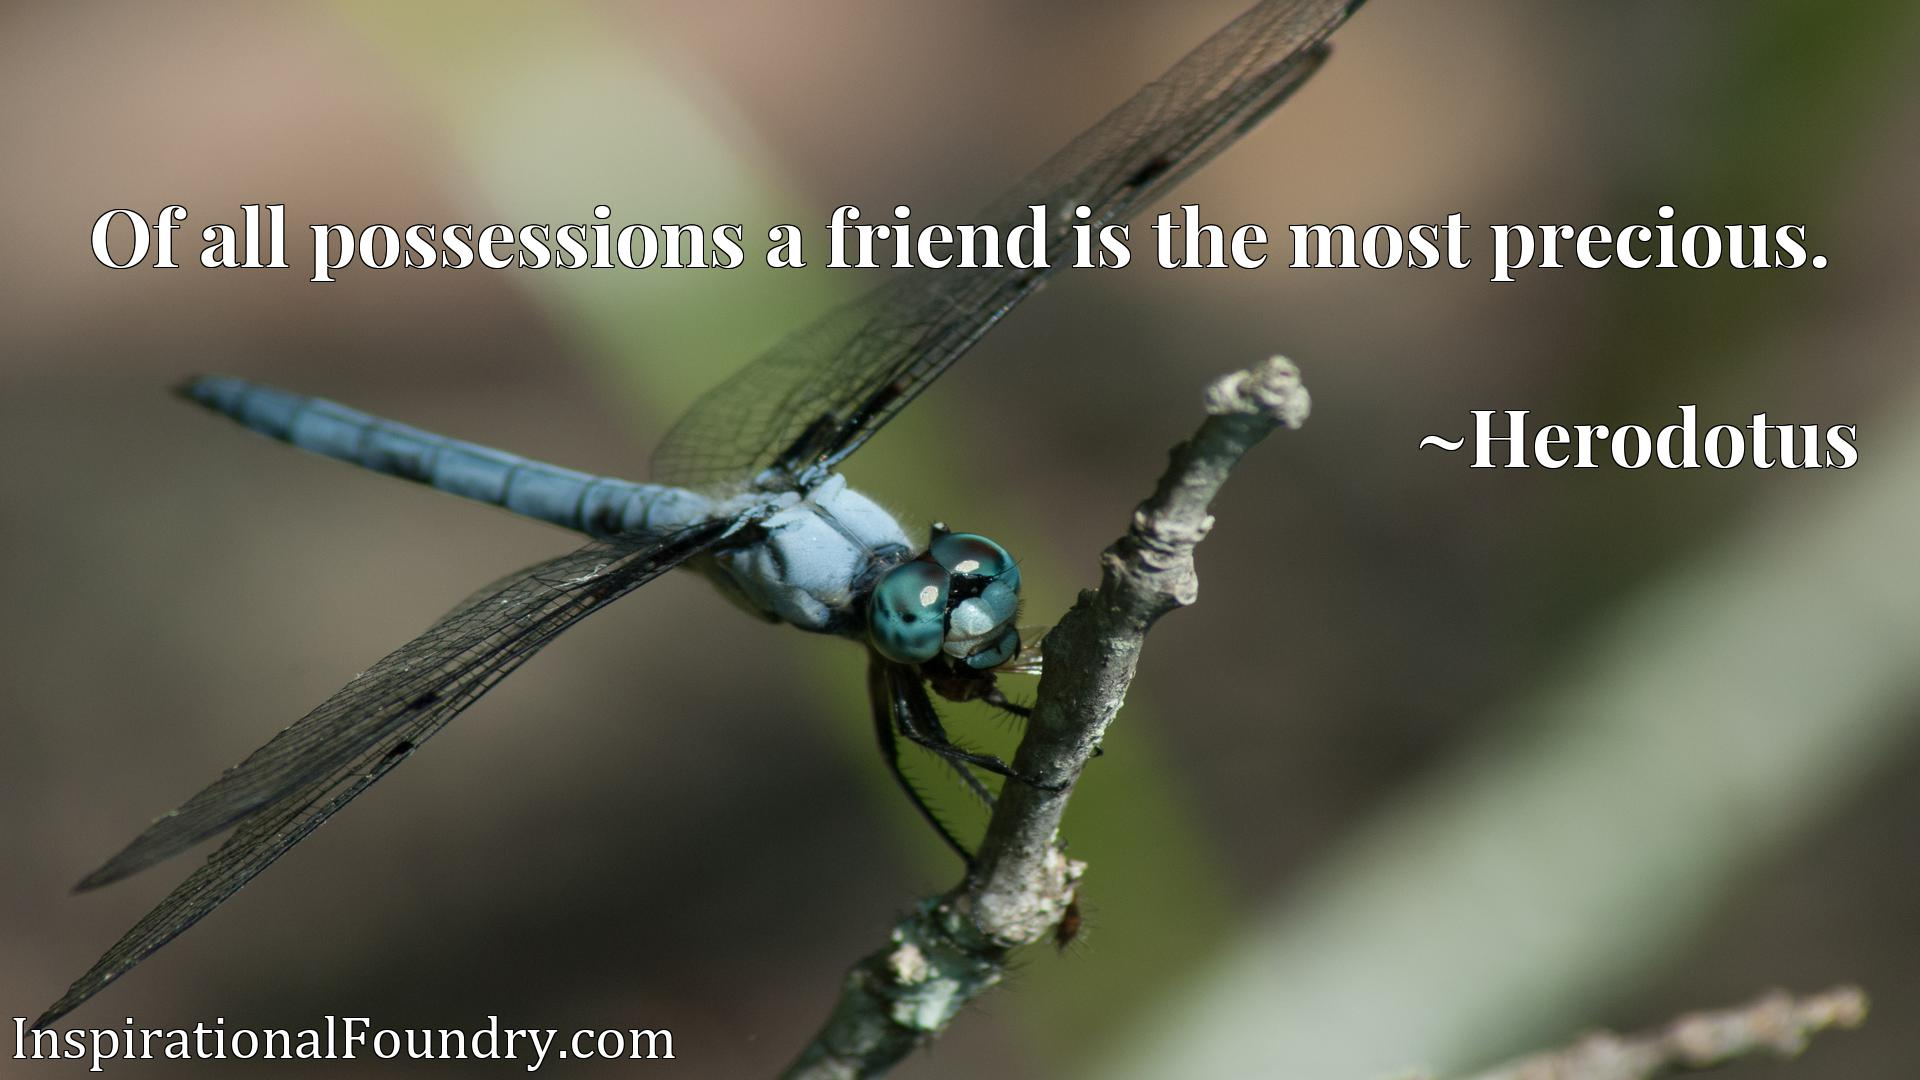 Of all possessions a friend is the most precious.